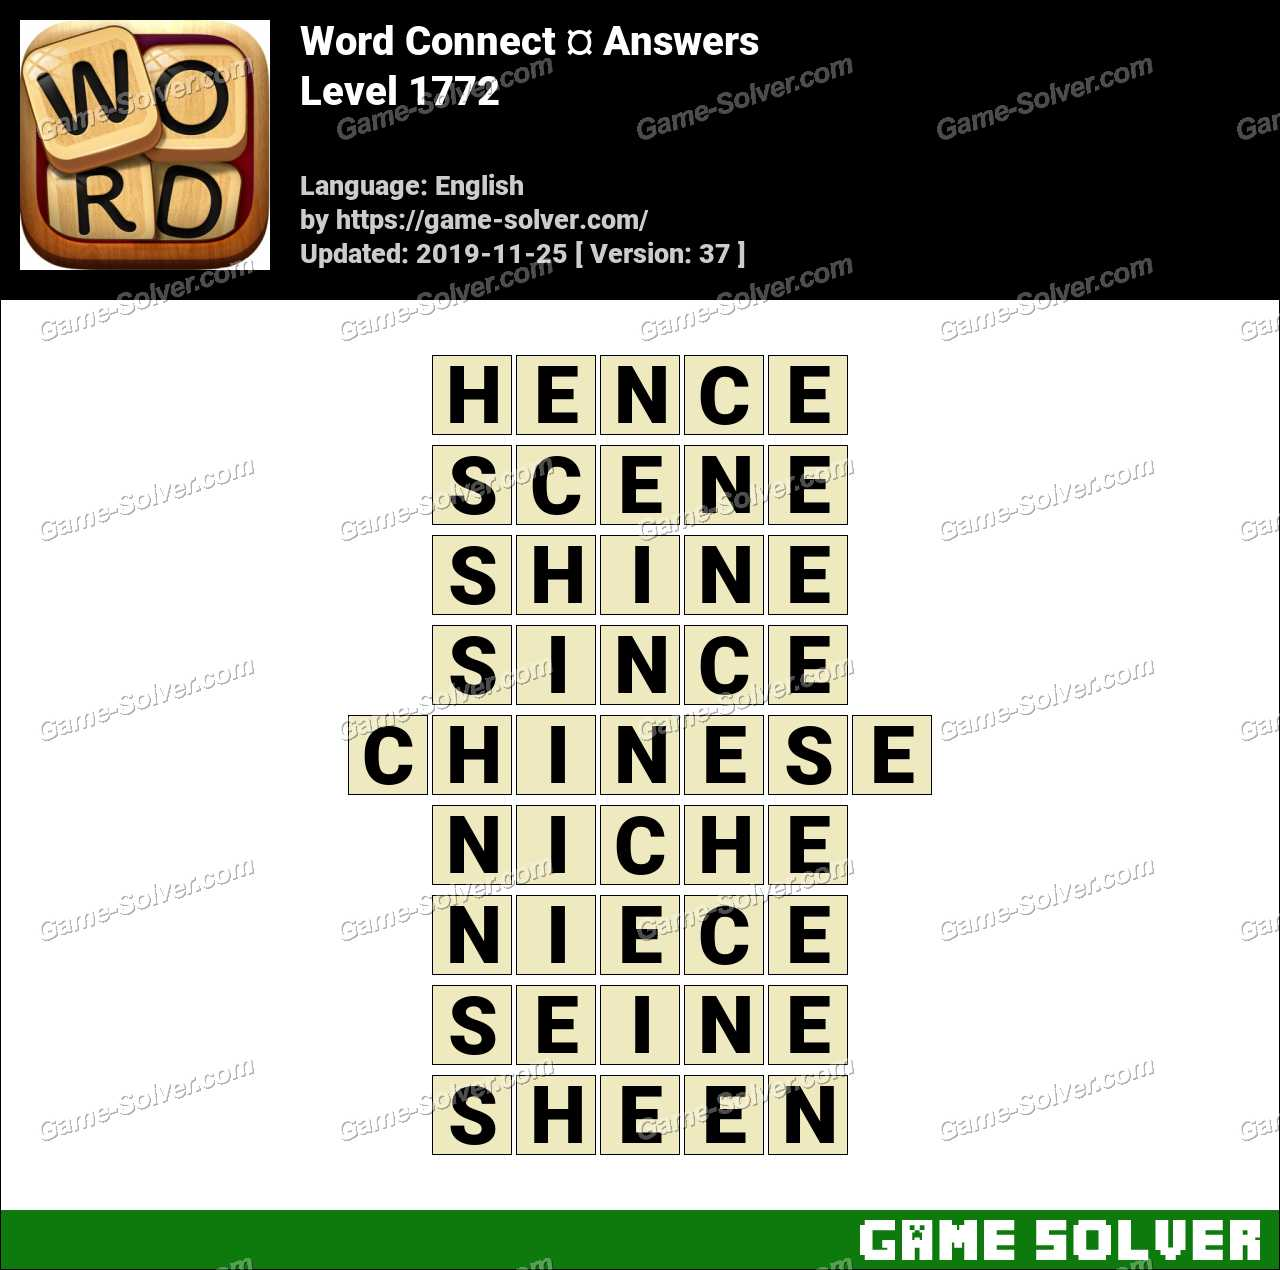 Word Connect Level 1772 Answers